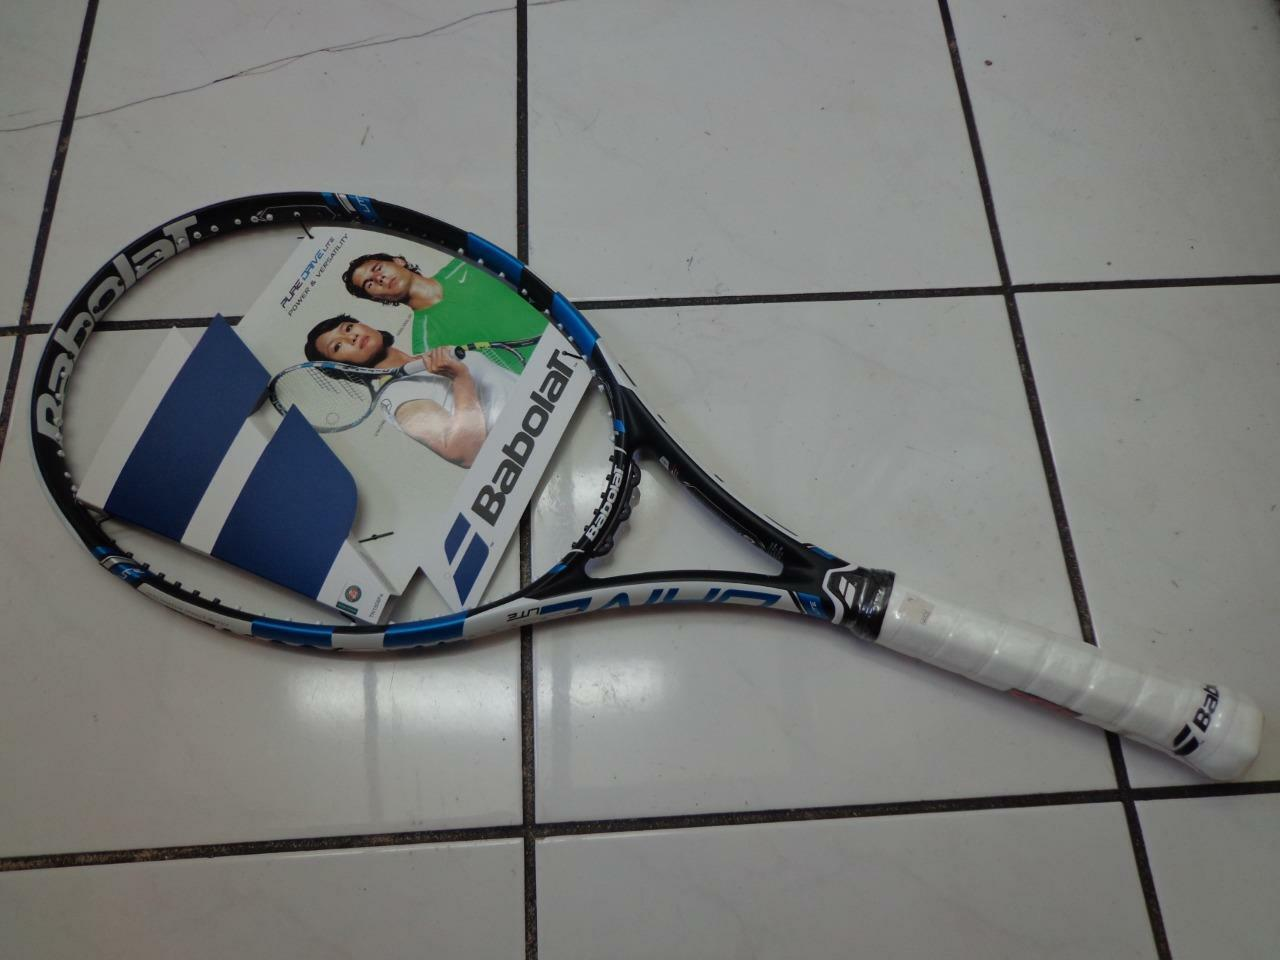 NEW 2015 Babolat Pure Drive LITE 100 head 4 1/2 grip Tennis Racquet